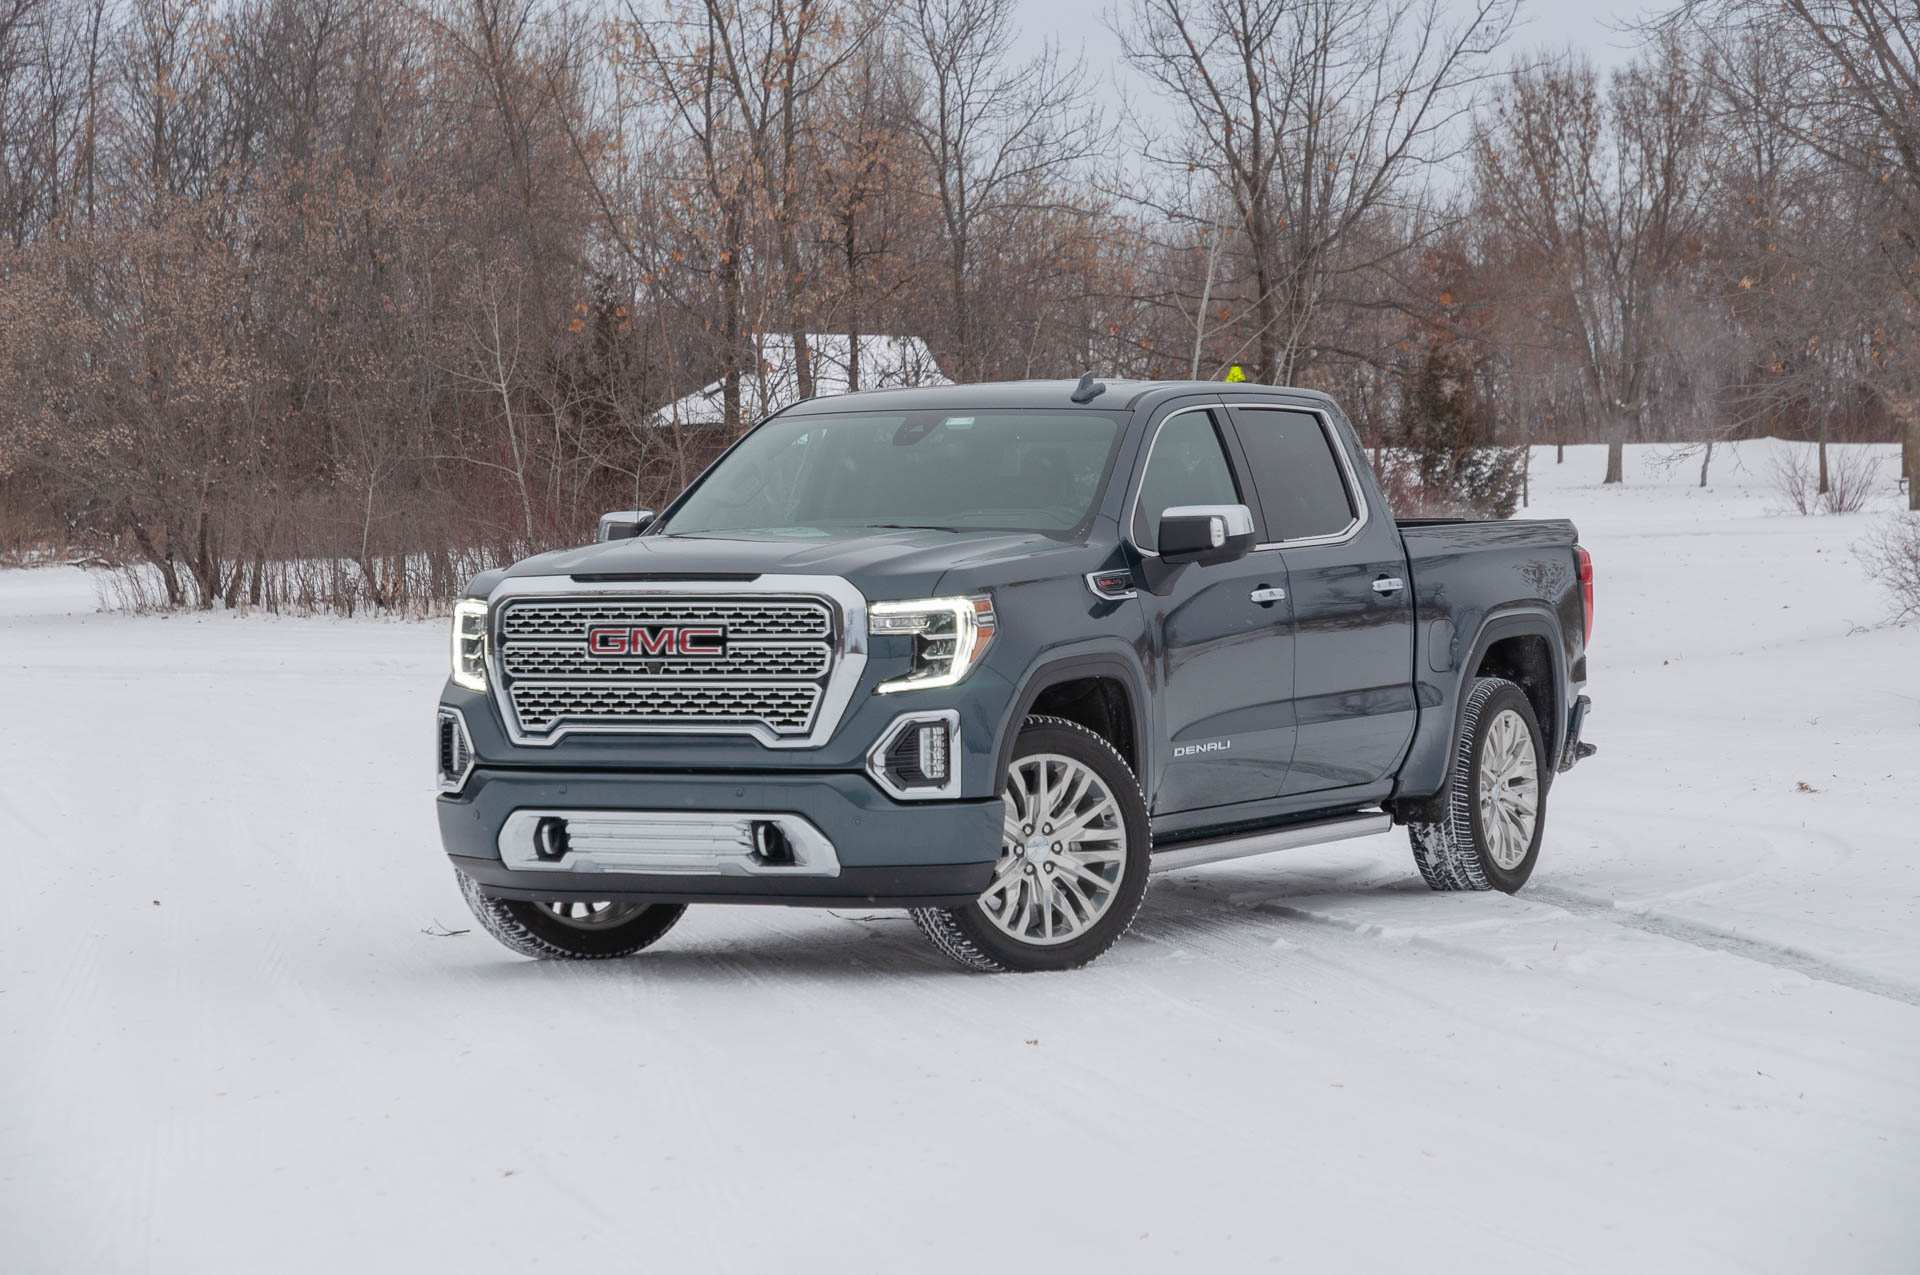 76 All New 2019 Gmc Sierra 1500 Denali New Review